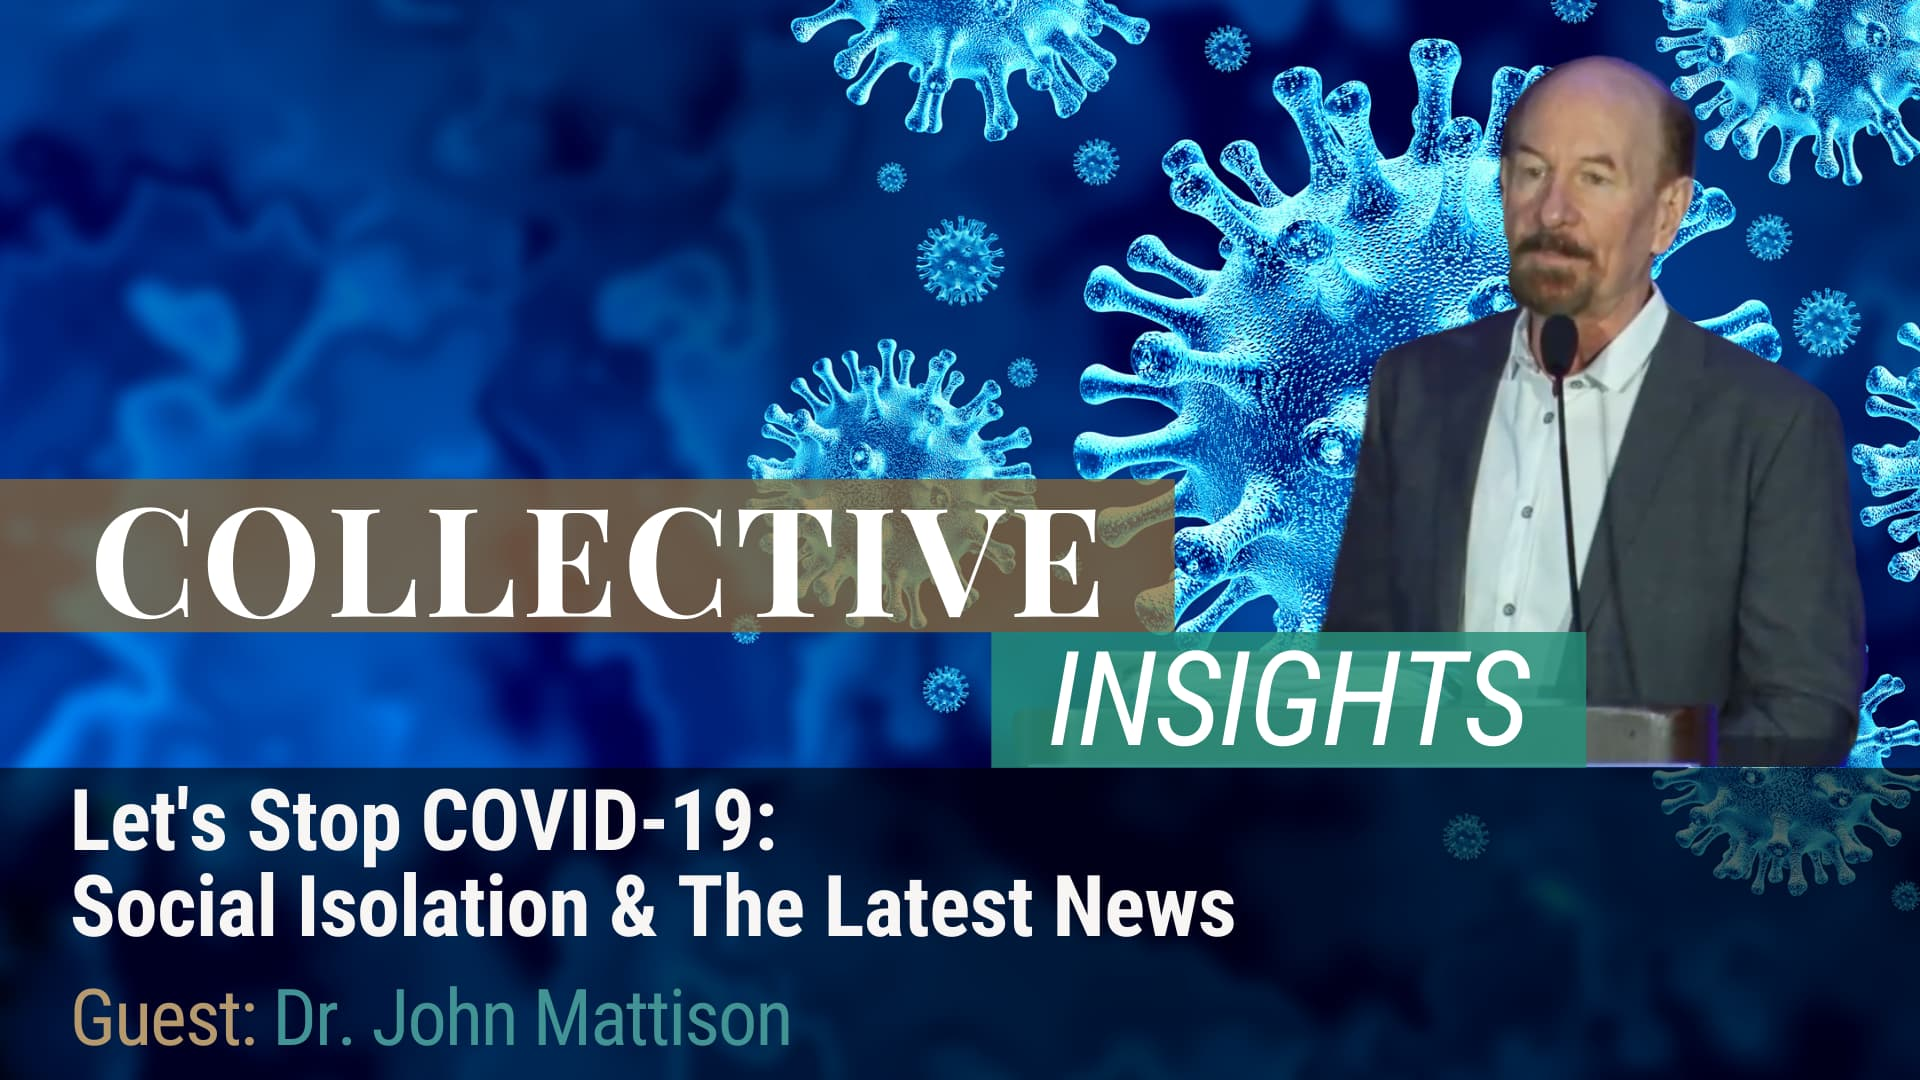 Let's Stop COVID-19: Social Isolation & The Latest News